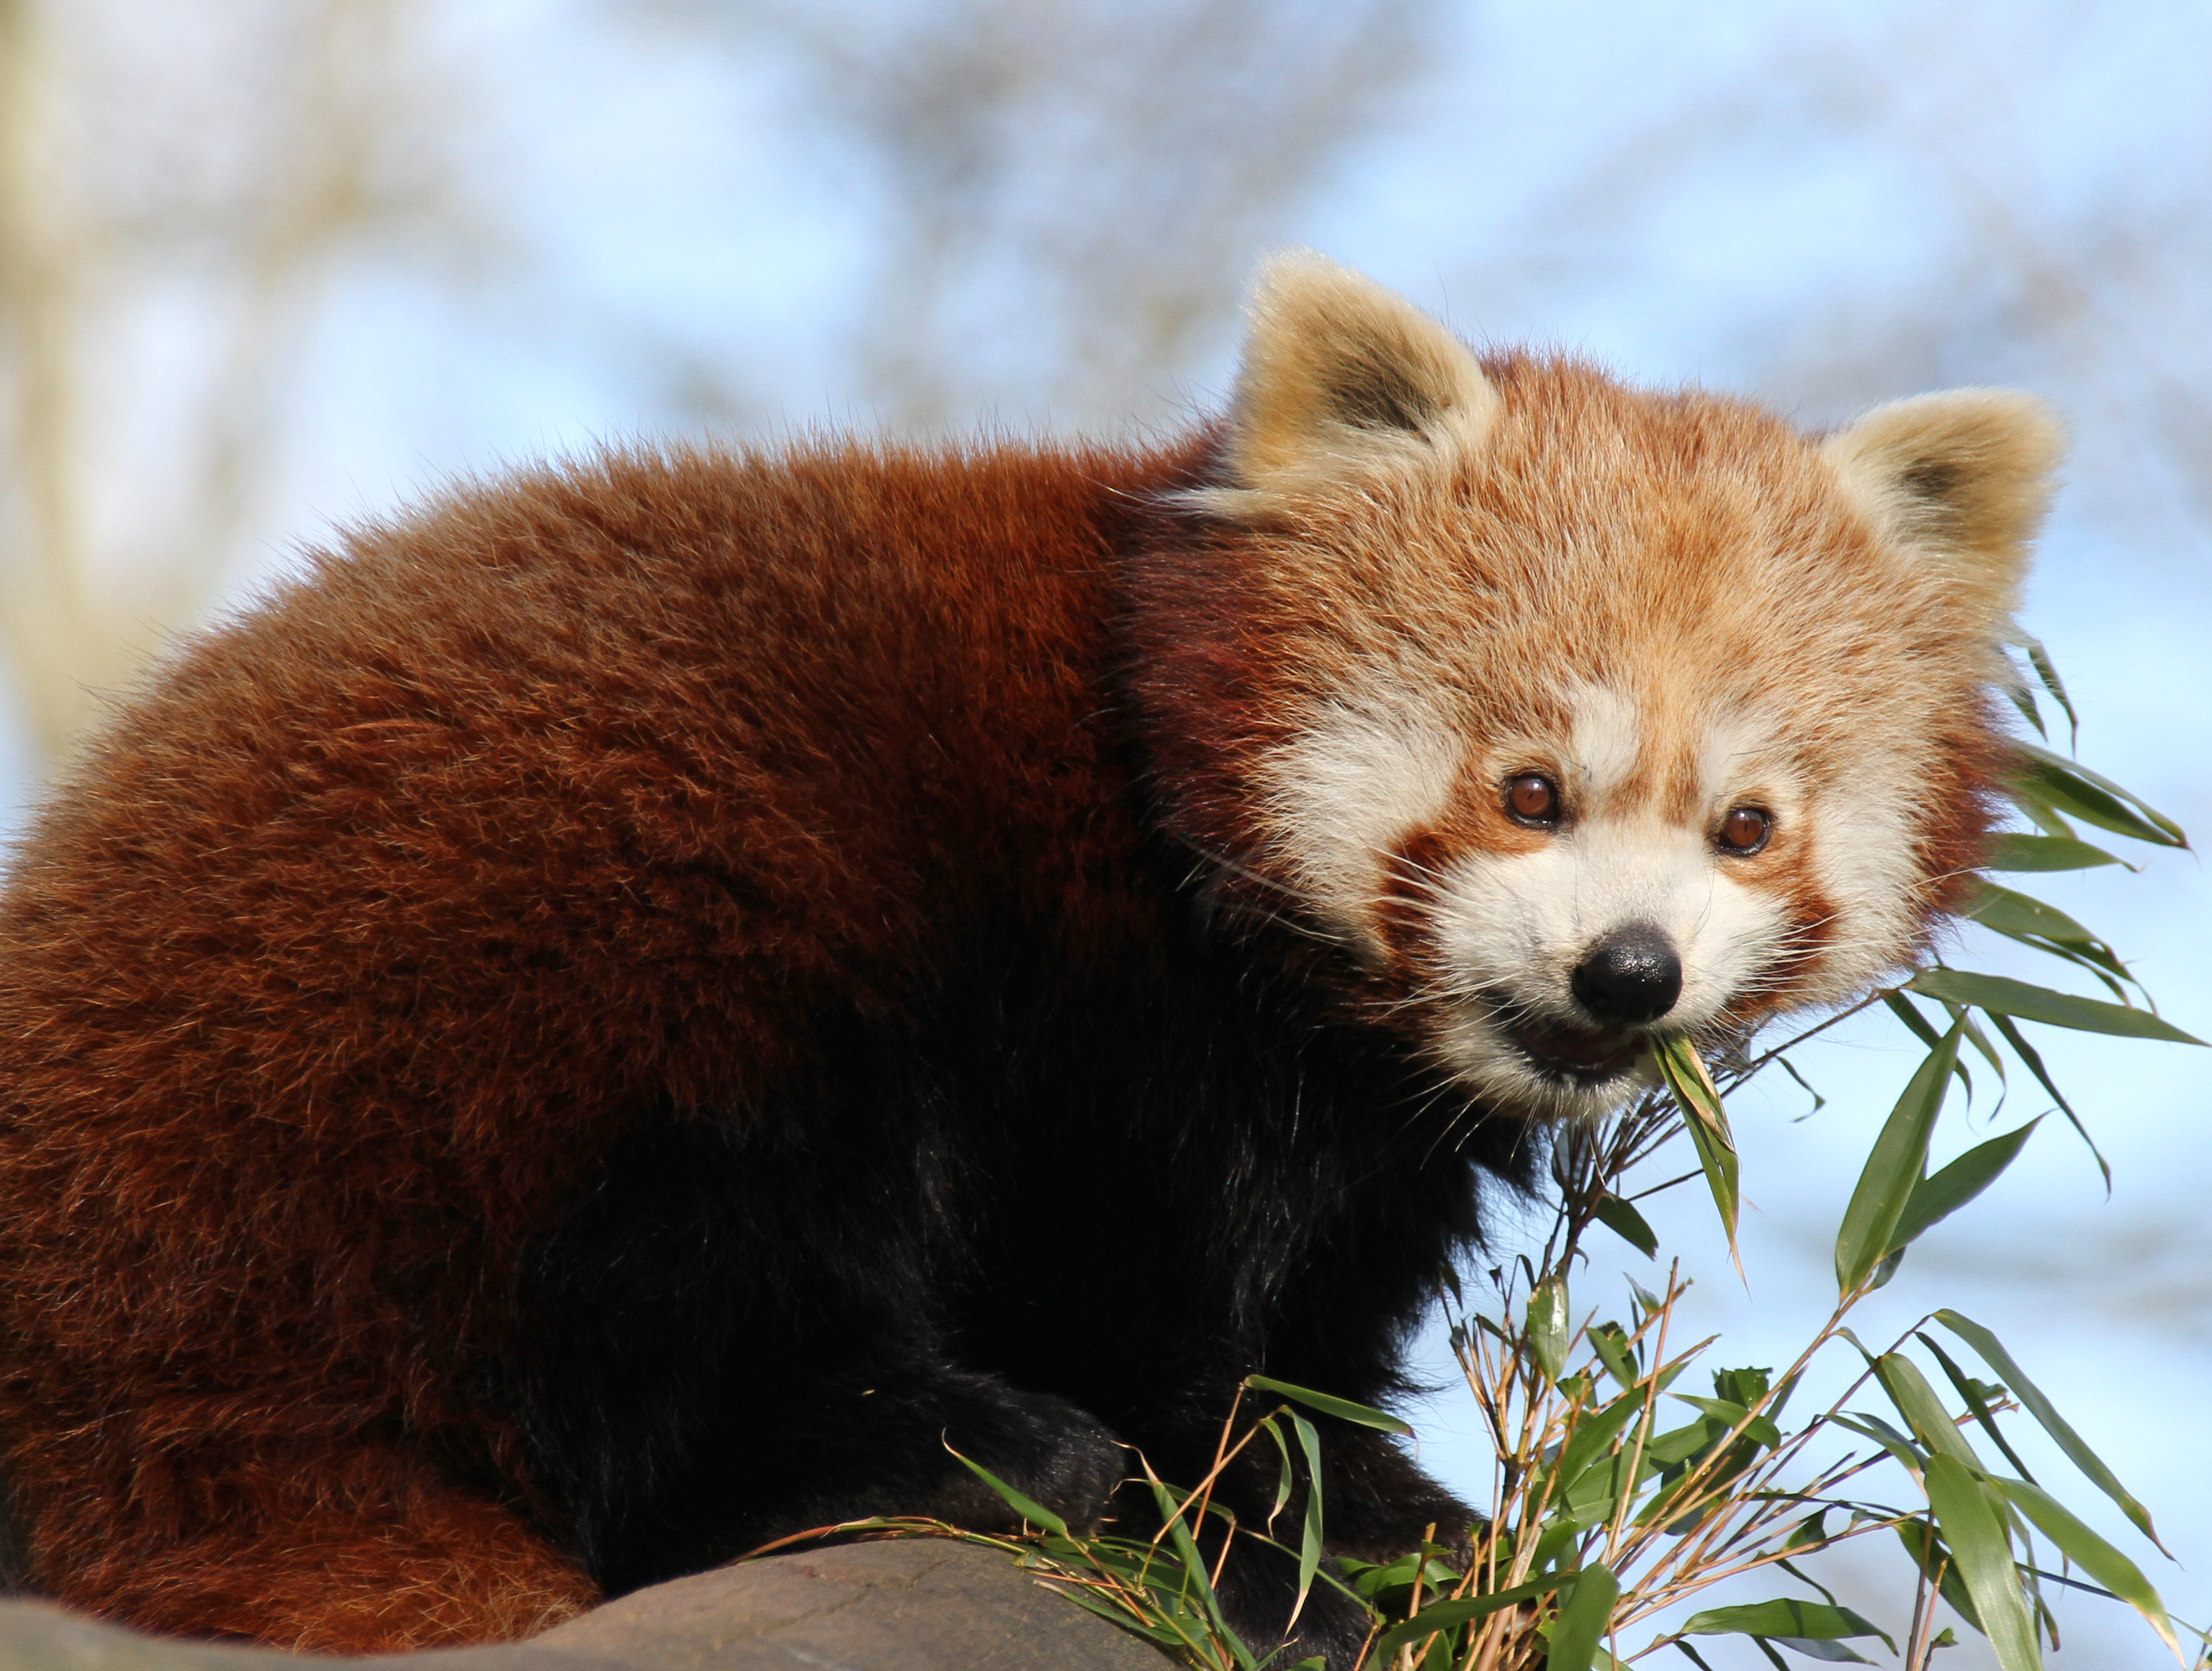 124764 download wallpaper Animals, Red Panda, Bamboo, Animal, Nice, Sweetheart screensavers and pictures for free